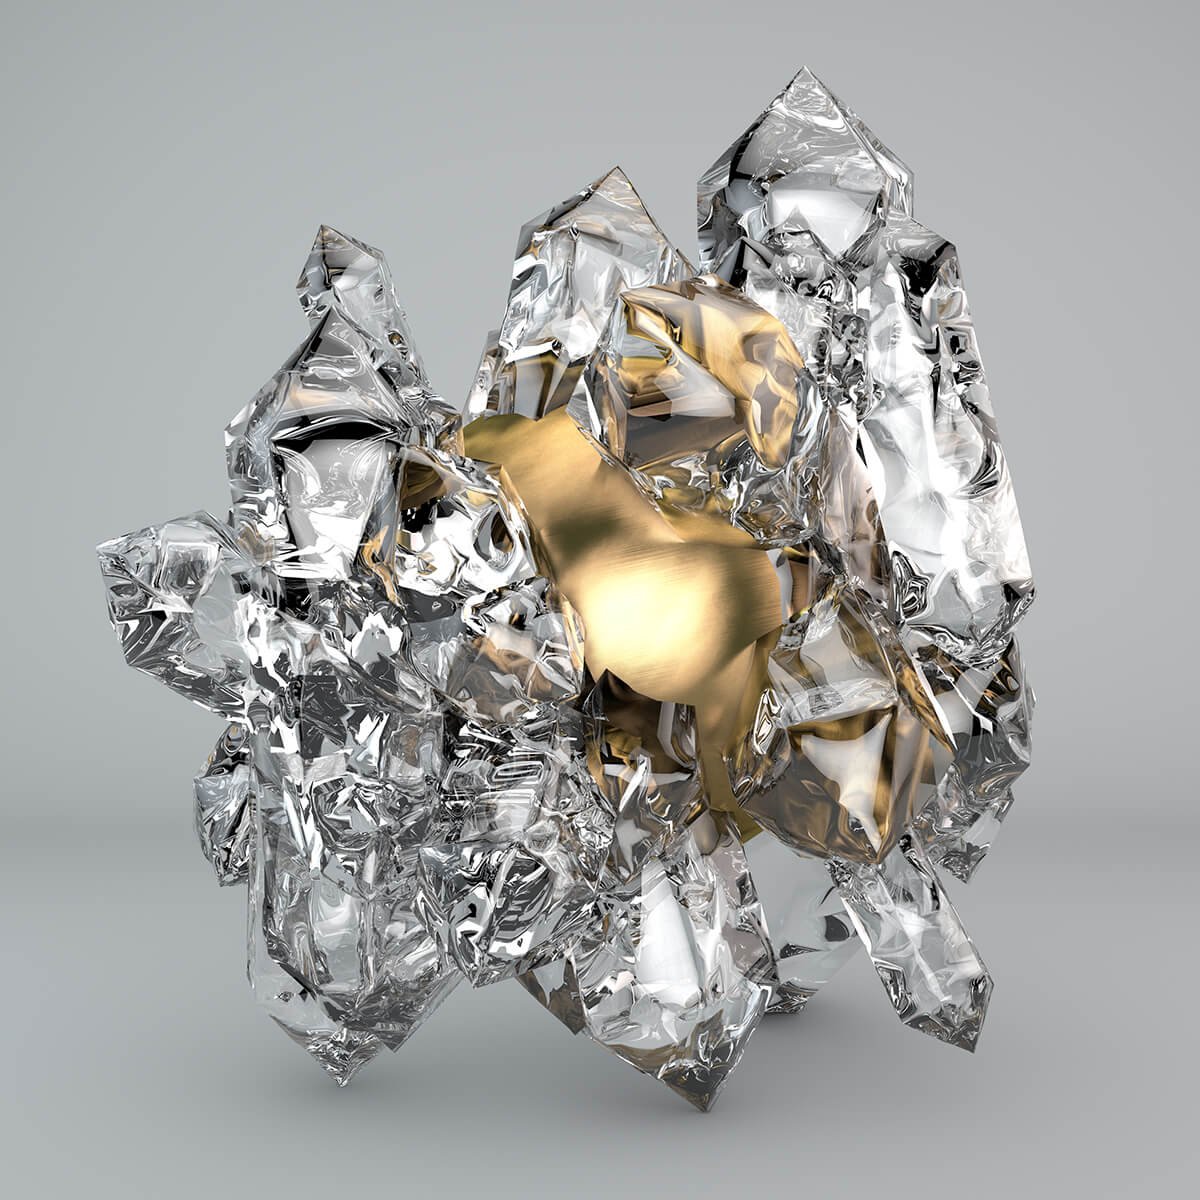 3D render of a golden sphere stuck in a structure of ice